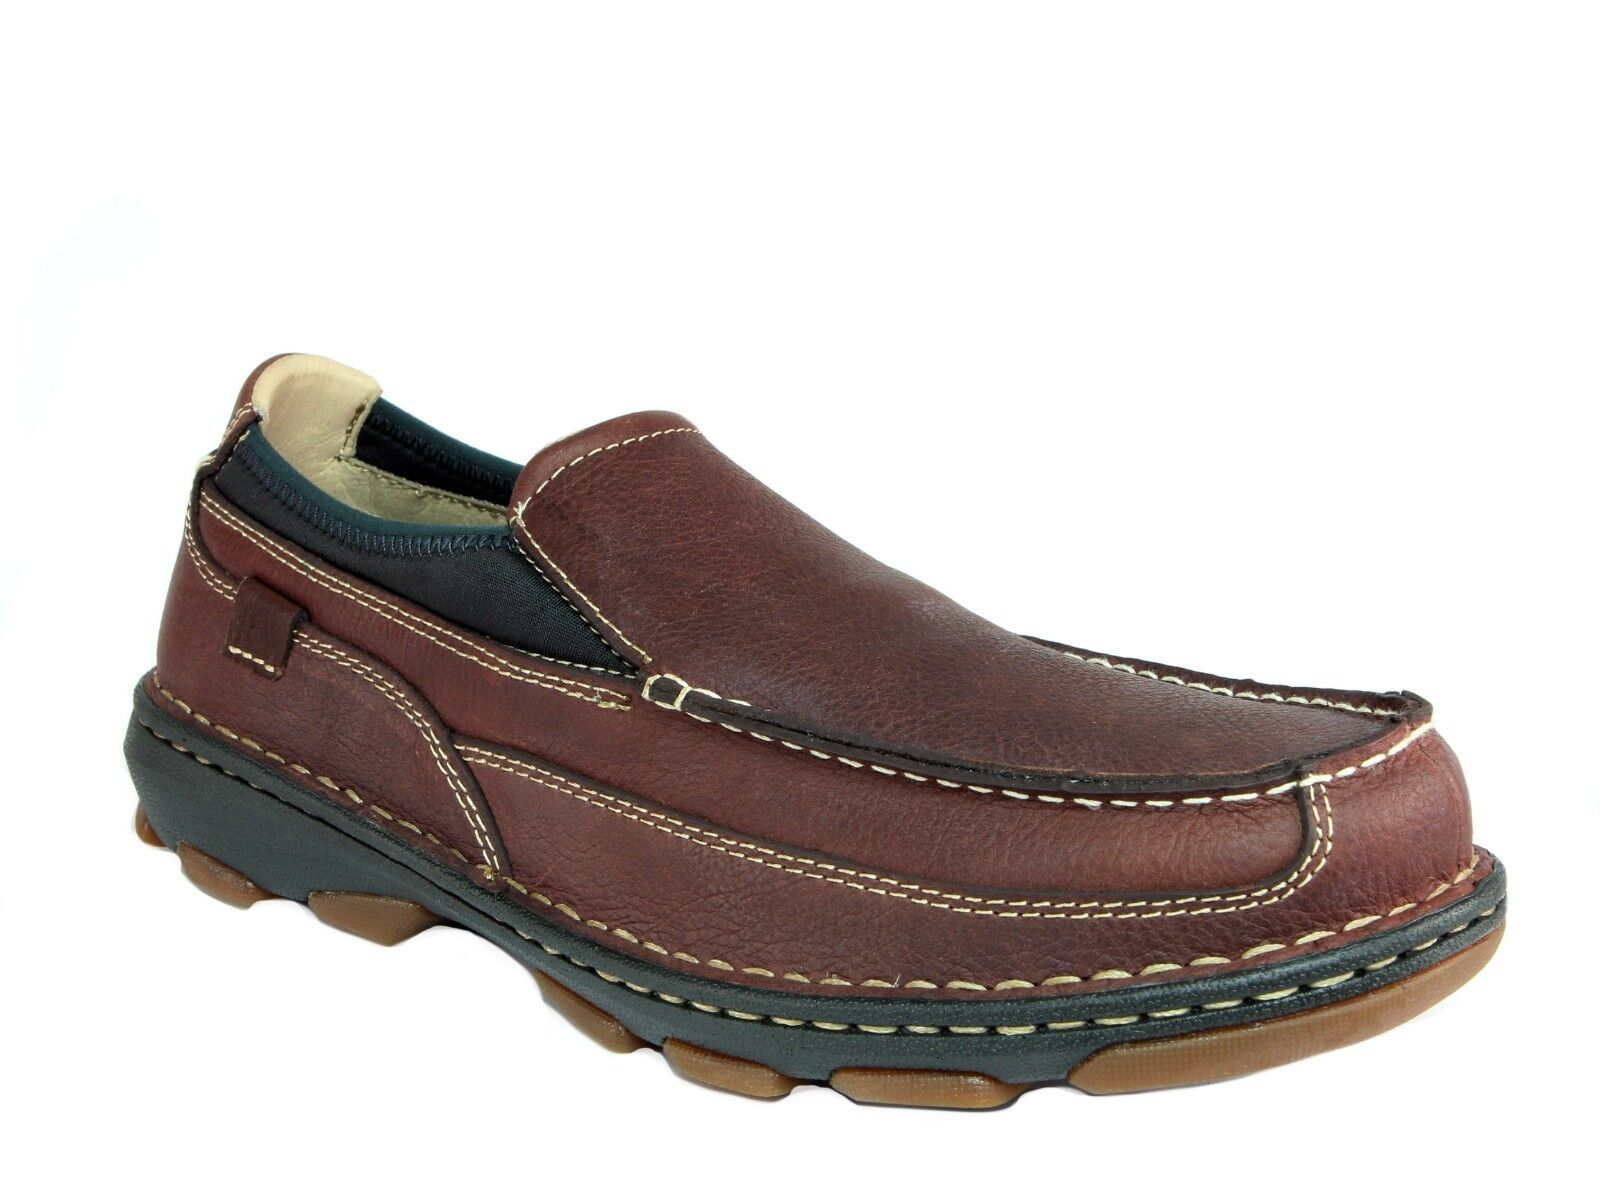 Rocky CRUISER Loafer Mens Work Casual Brown Leather Shoes